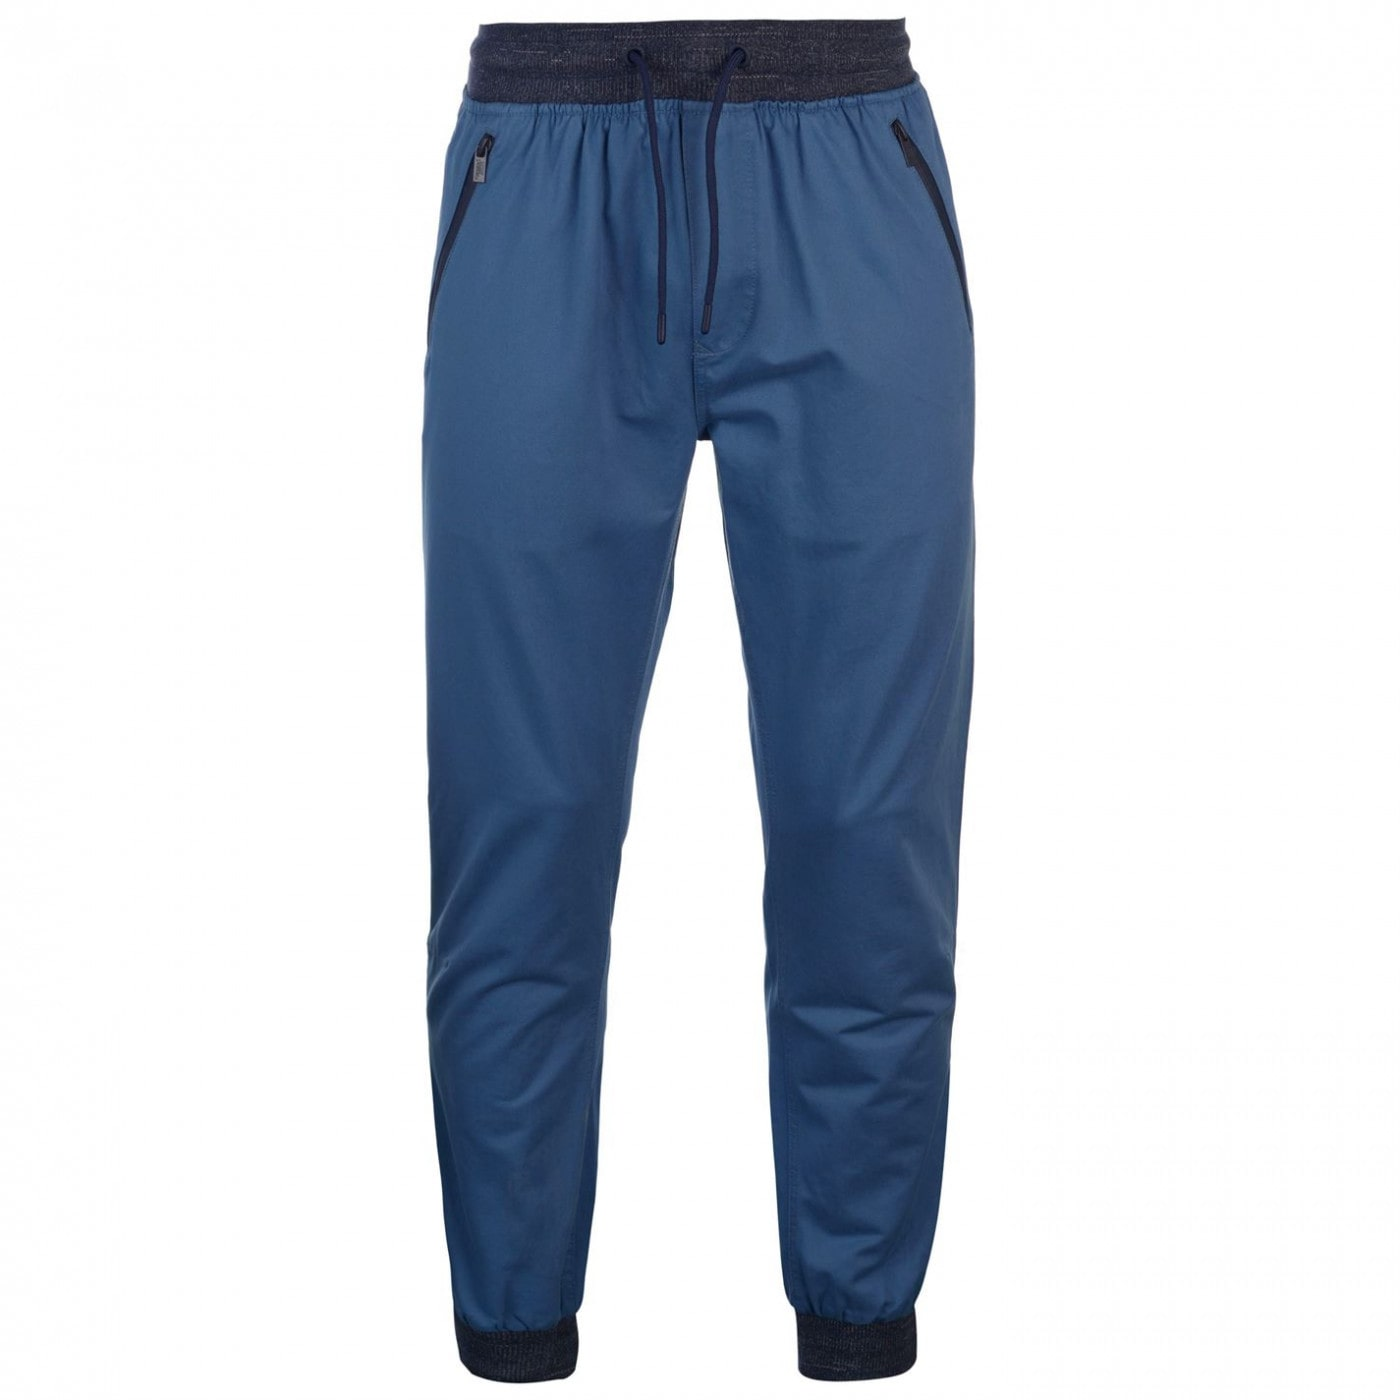 Men's pants No Fear Chino